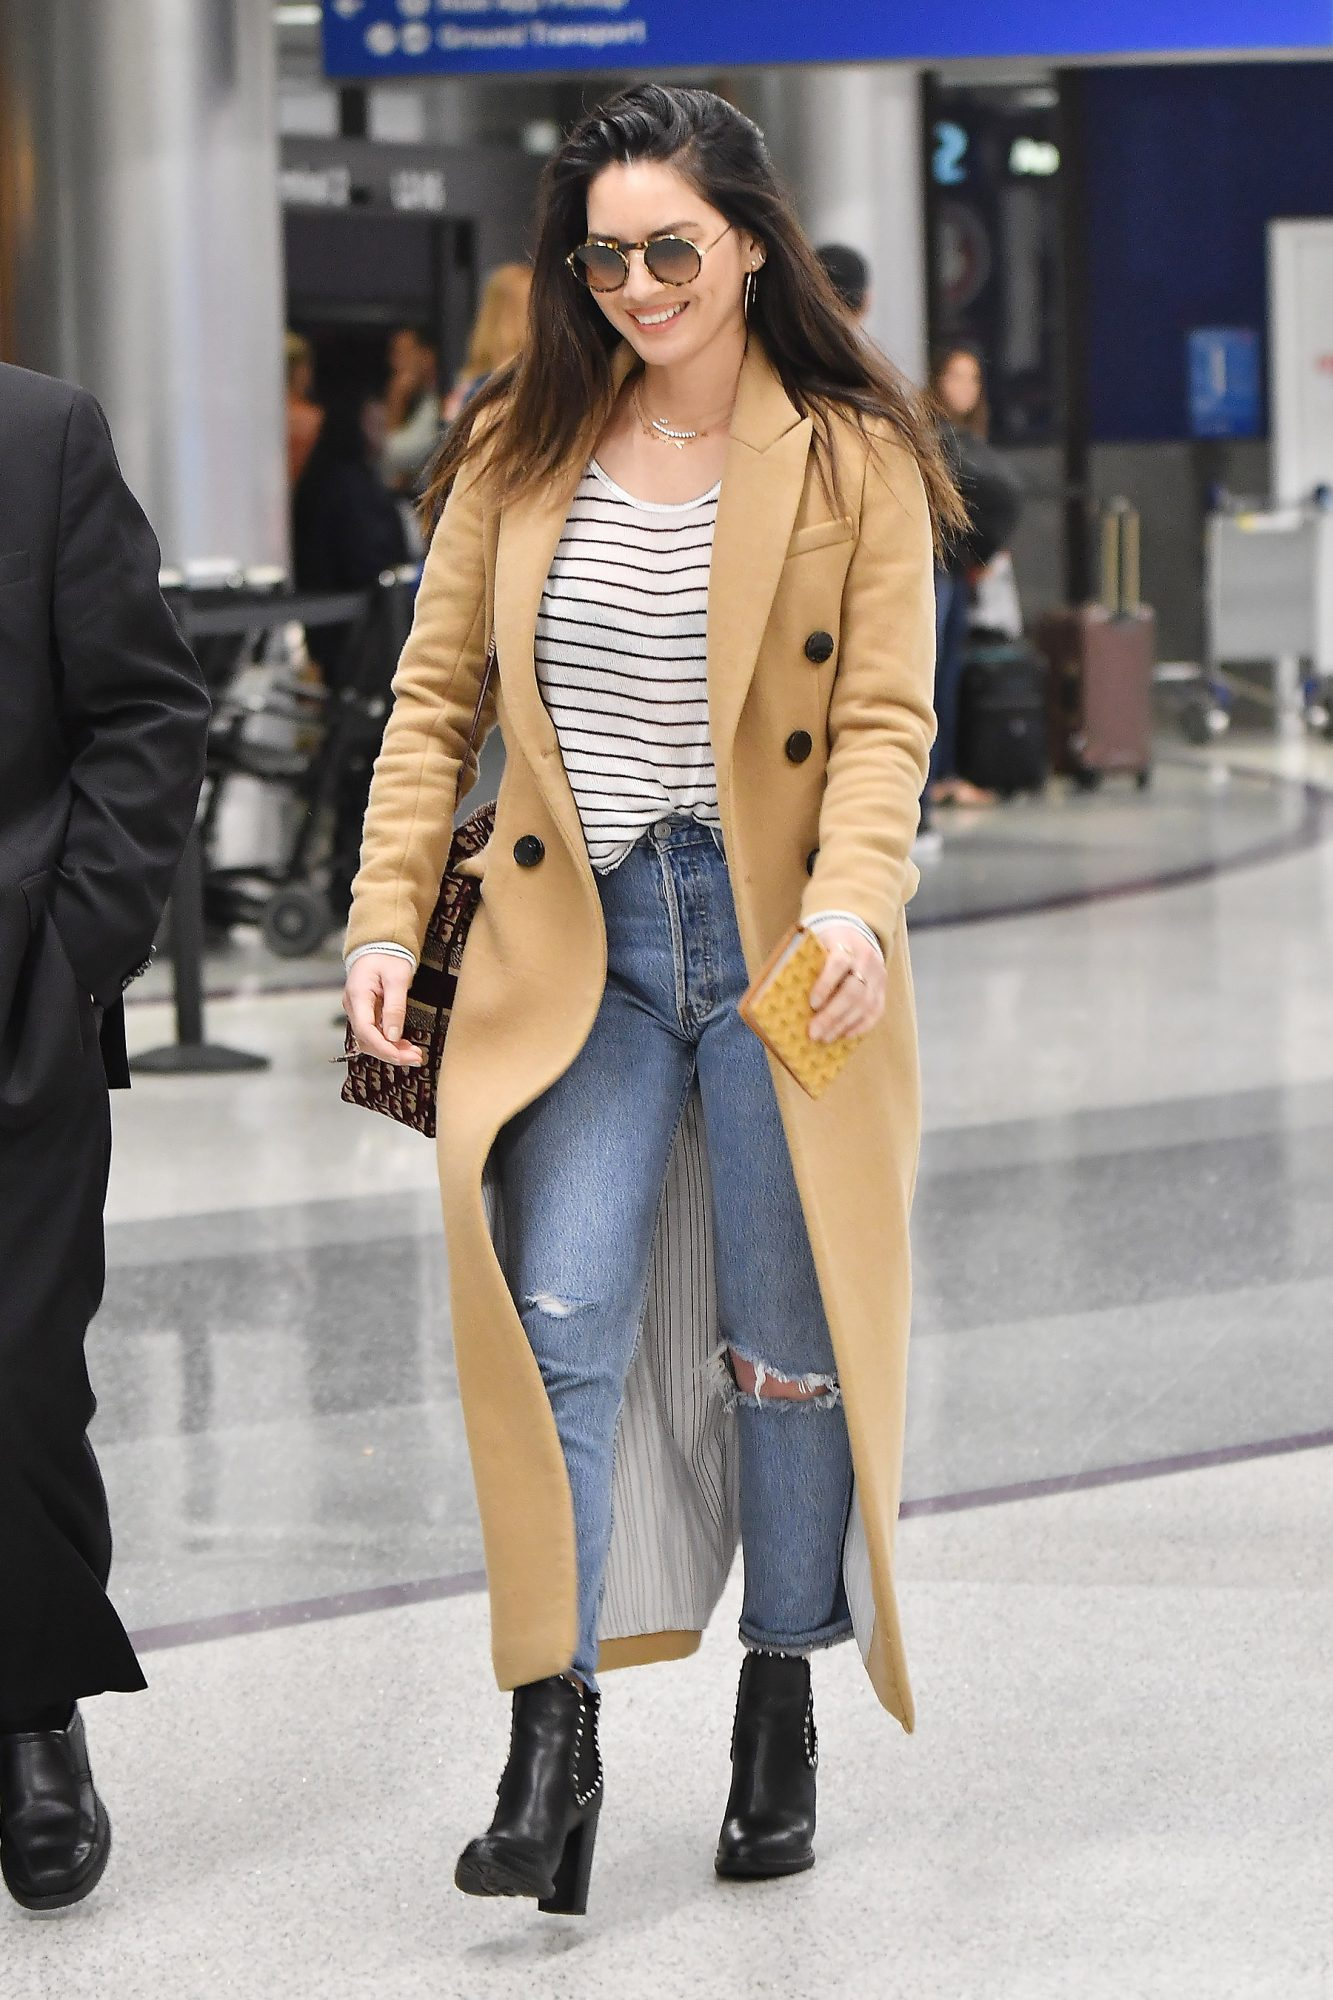 Olivia Munn is Pictured at LAX Airport in Los Angeles.